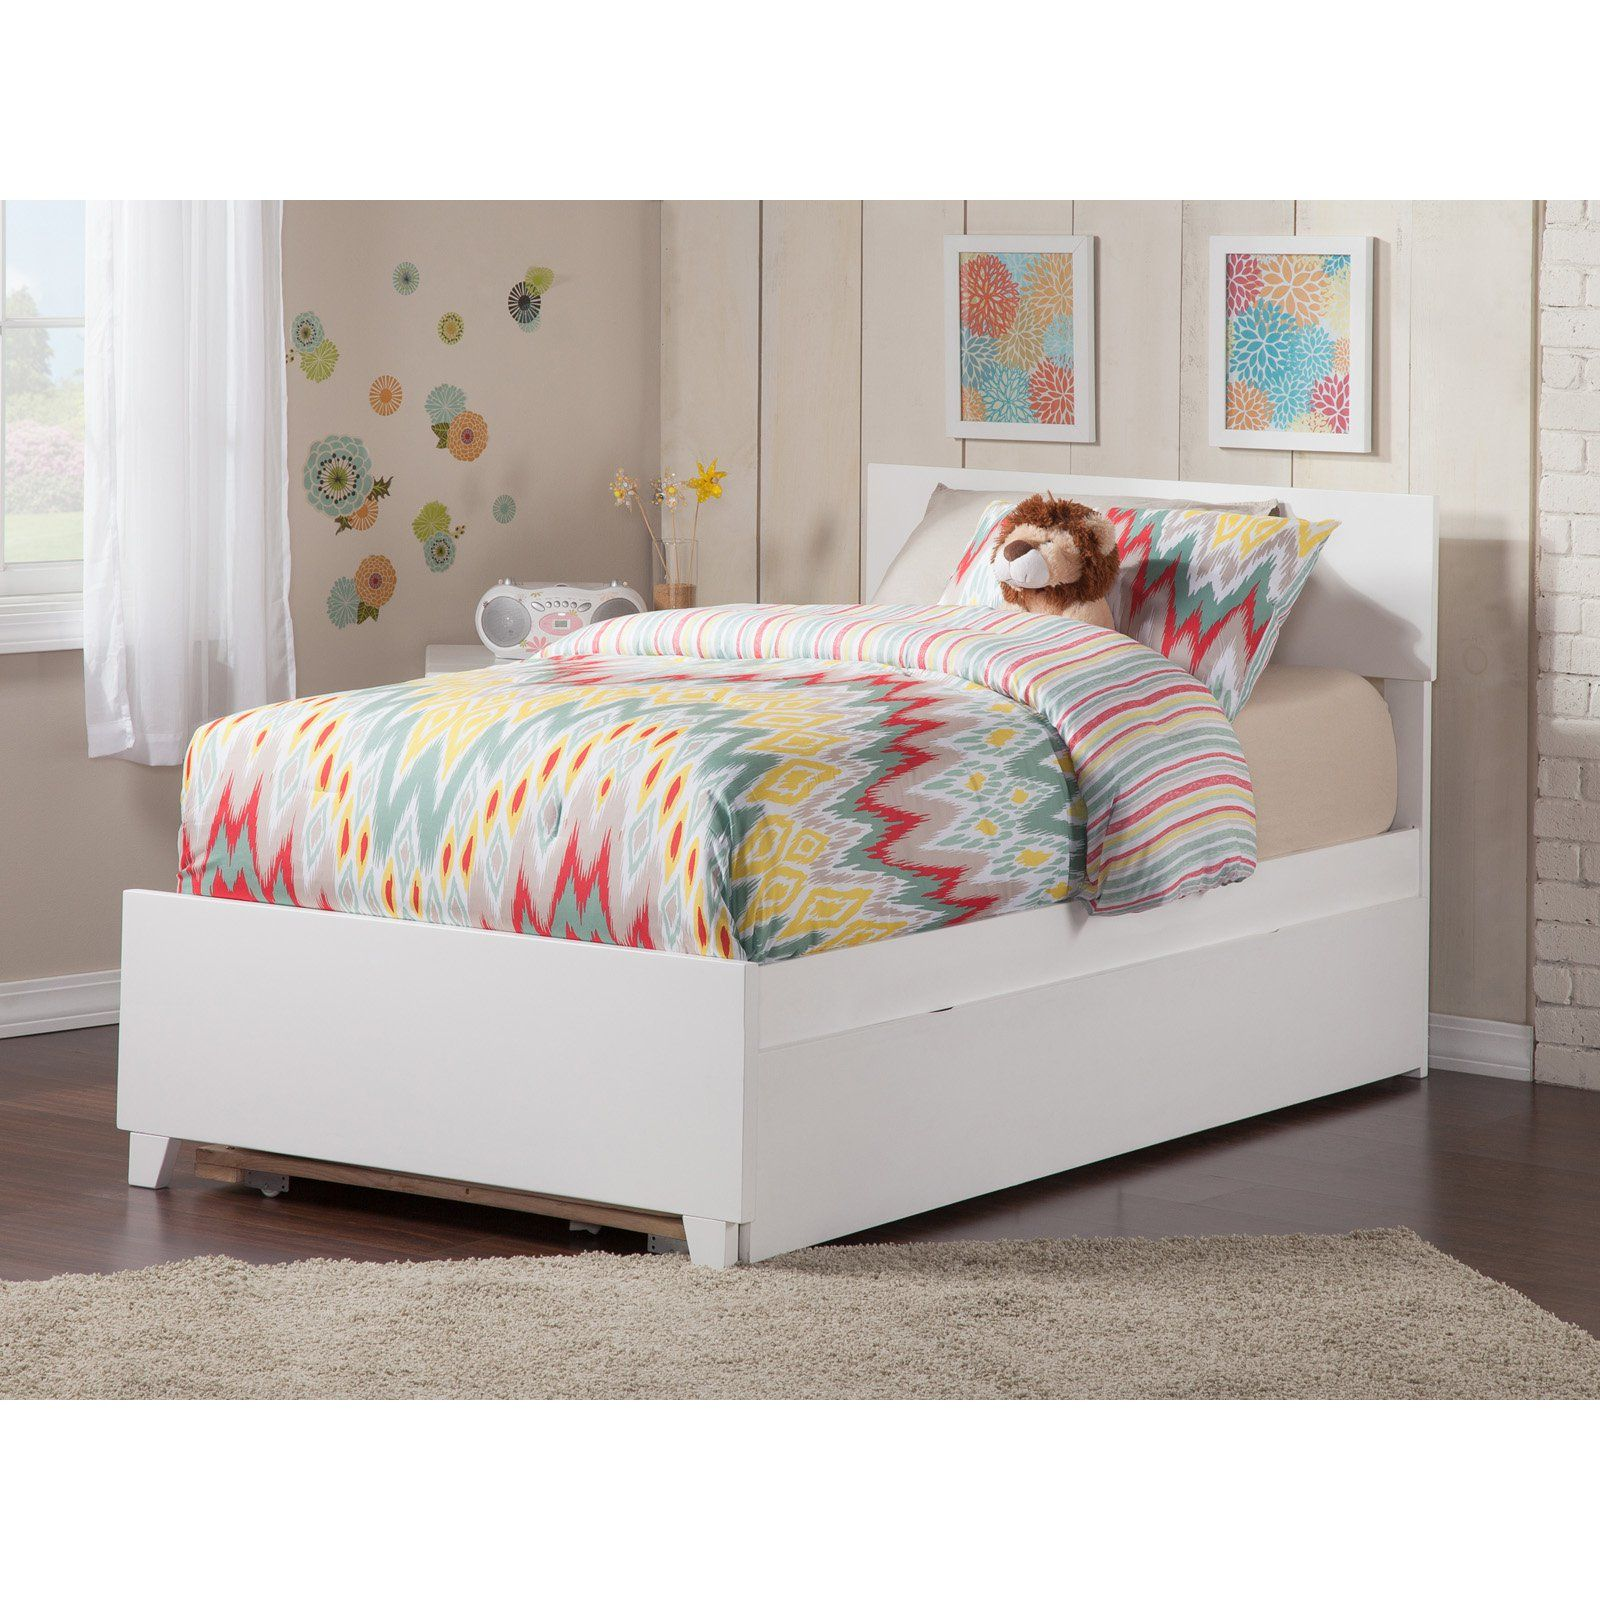 Atlantic Furniture Orlando Bed with Matching Foot Board